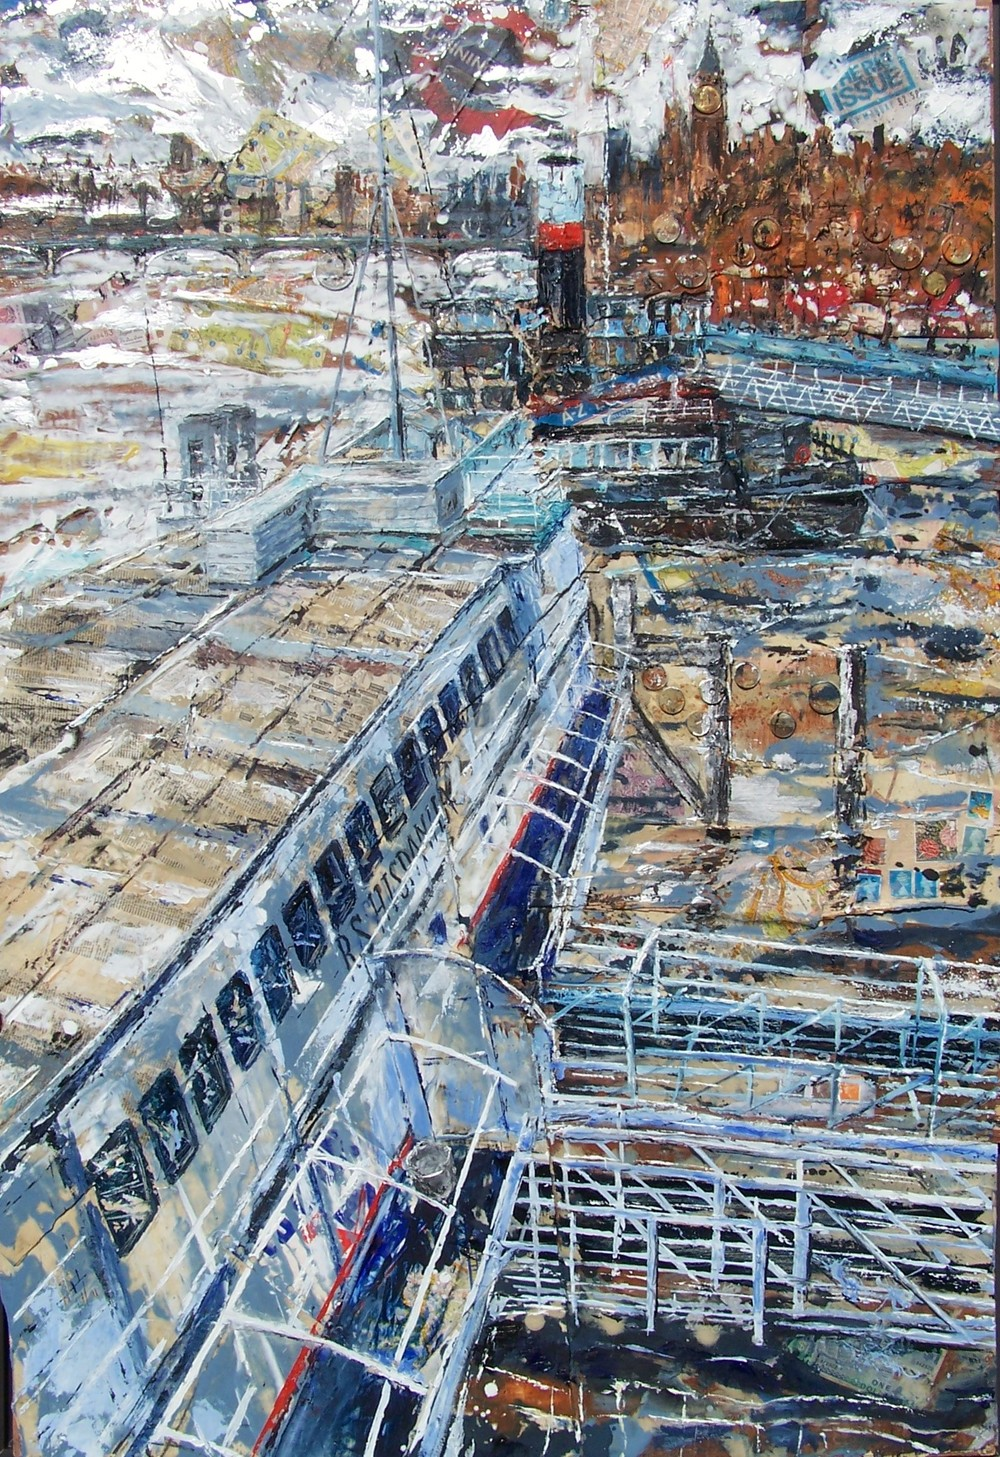 R.S Hispaniola, Thames, Oil paint and collage on wood